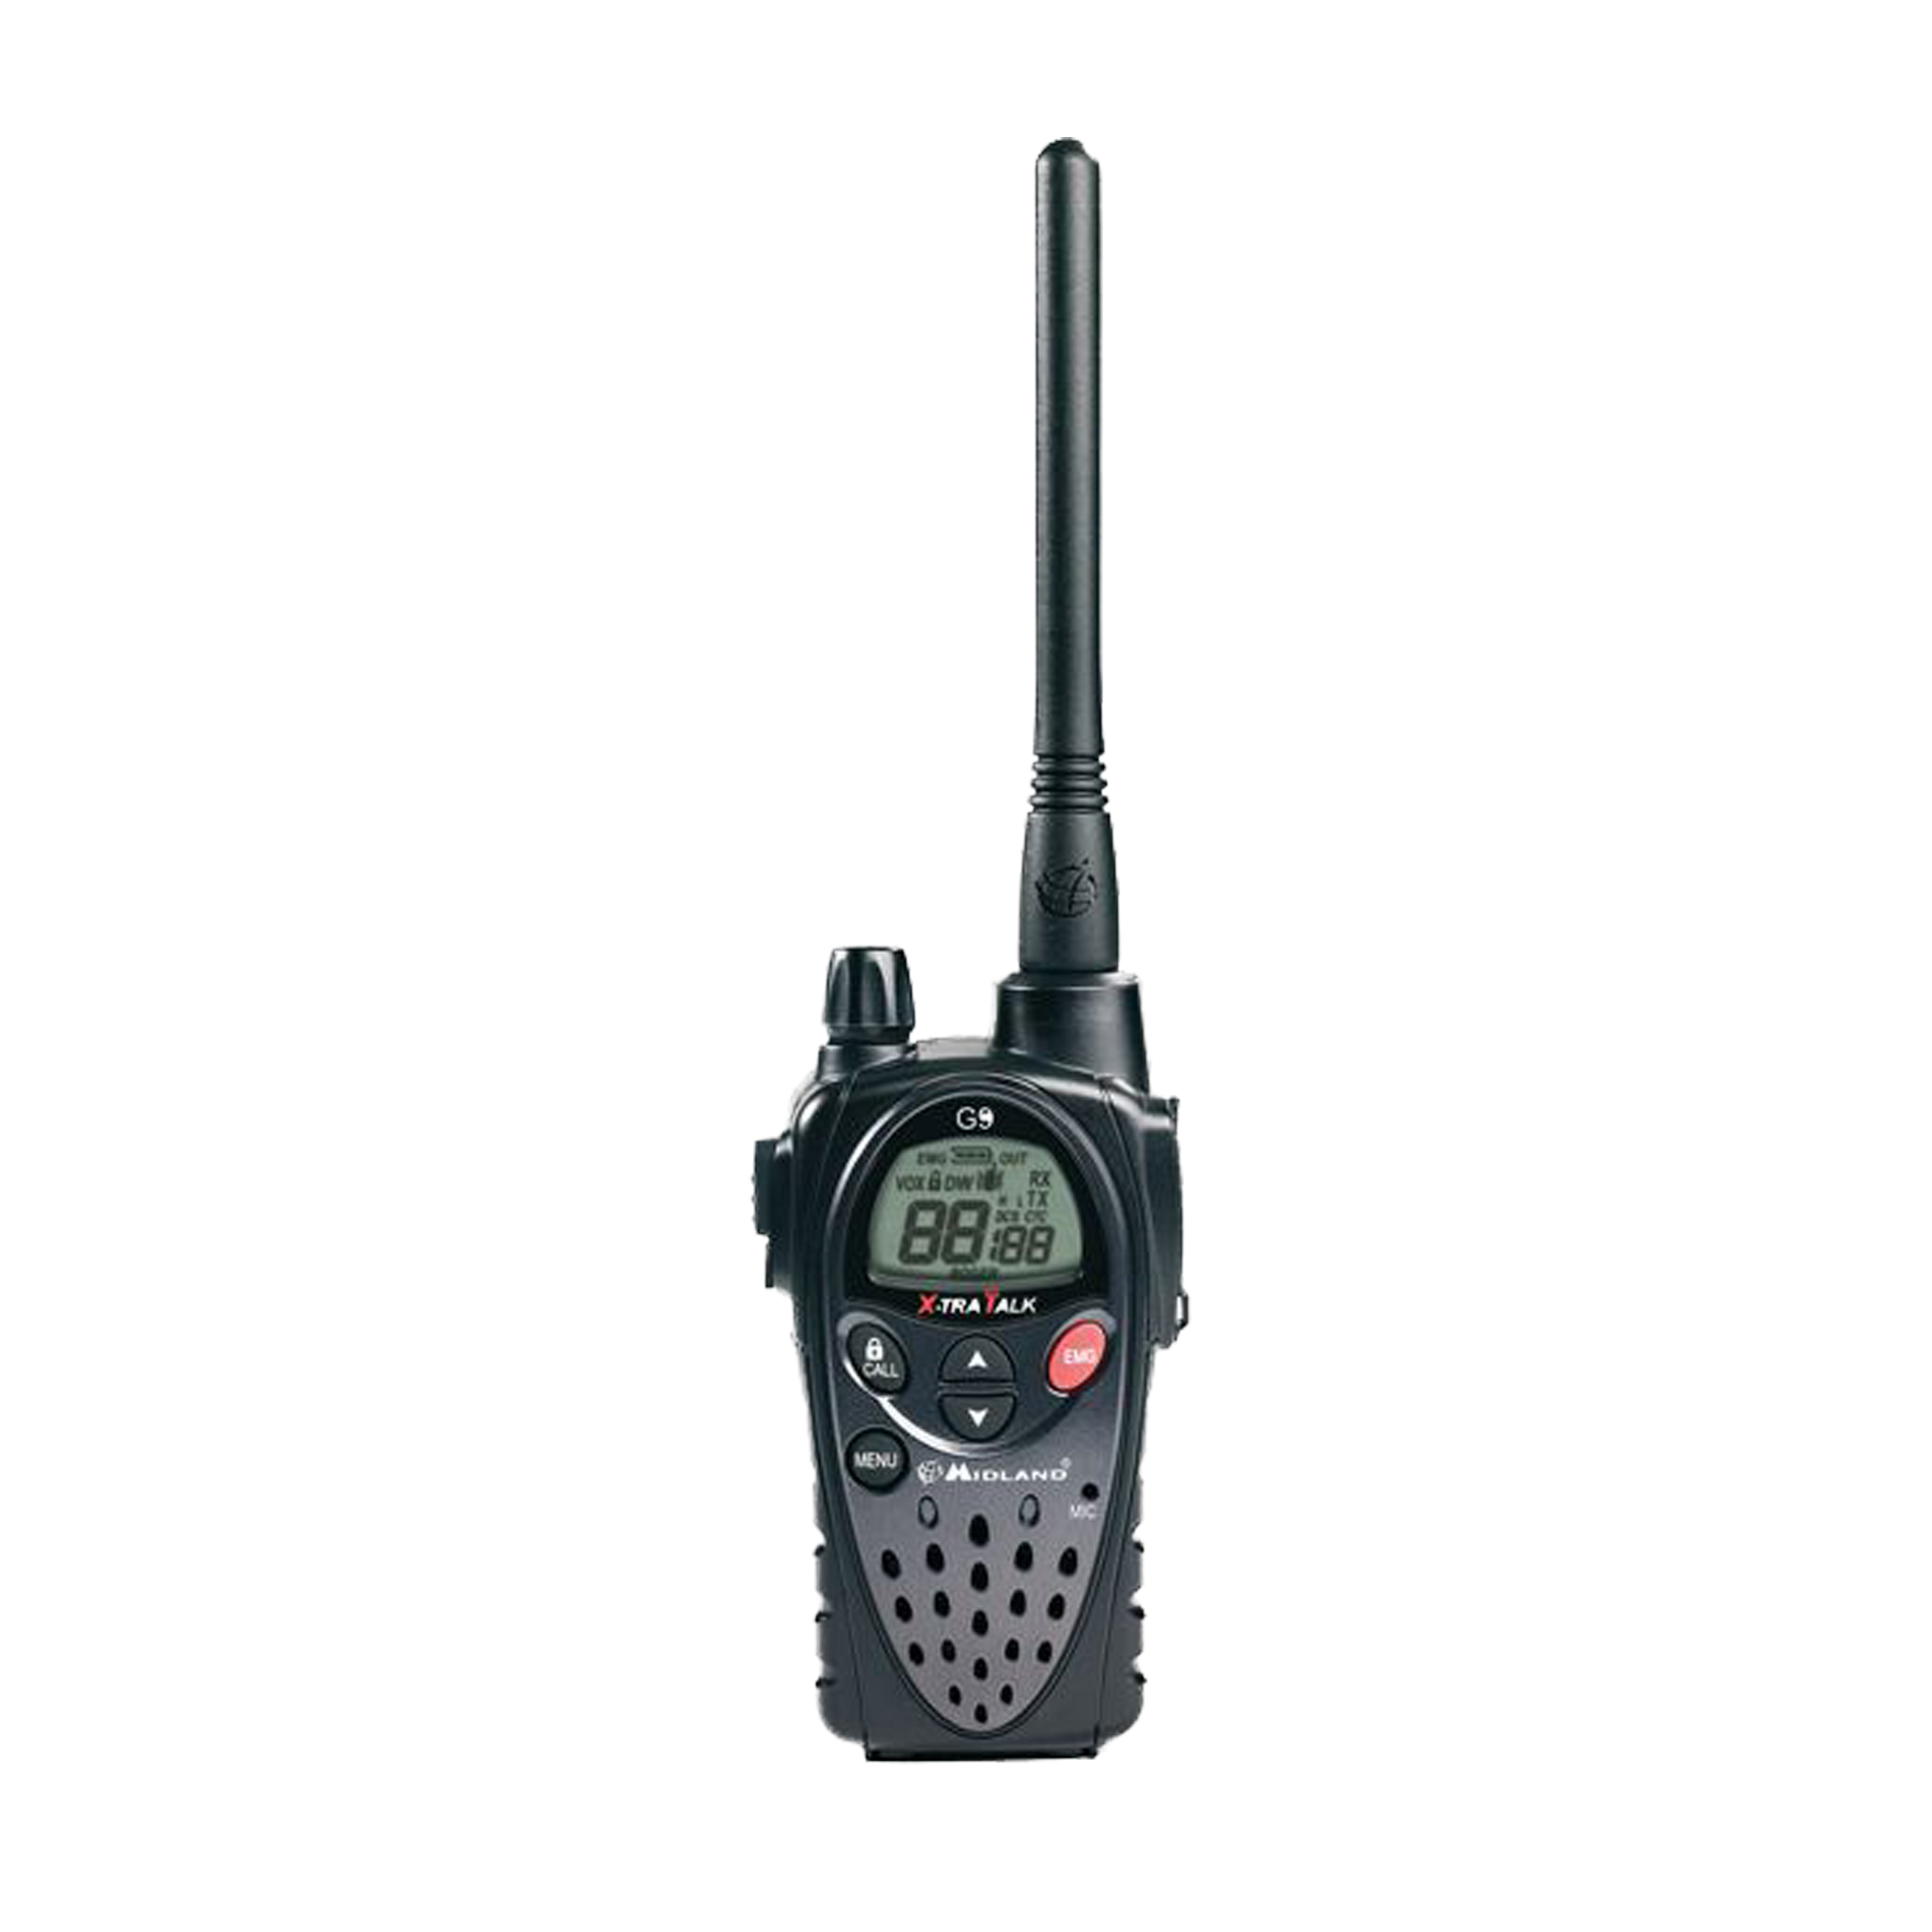 Midland Hand Held Radio G9Plus